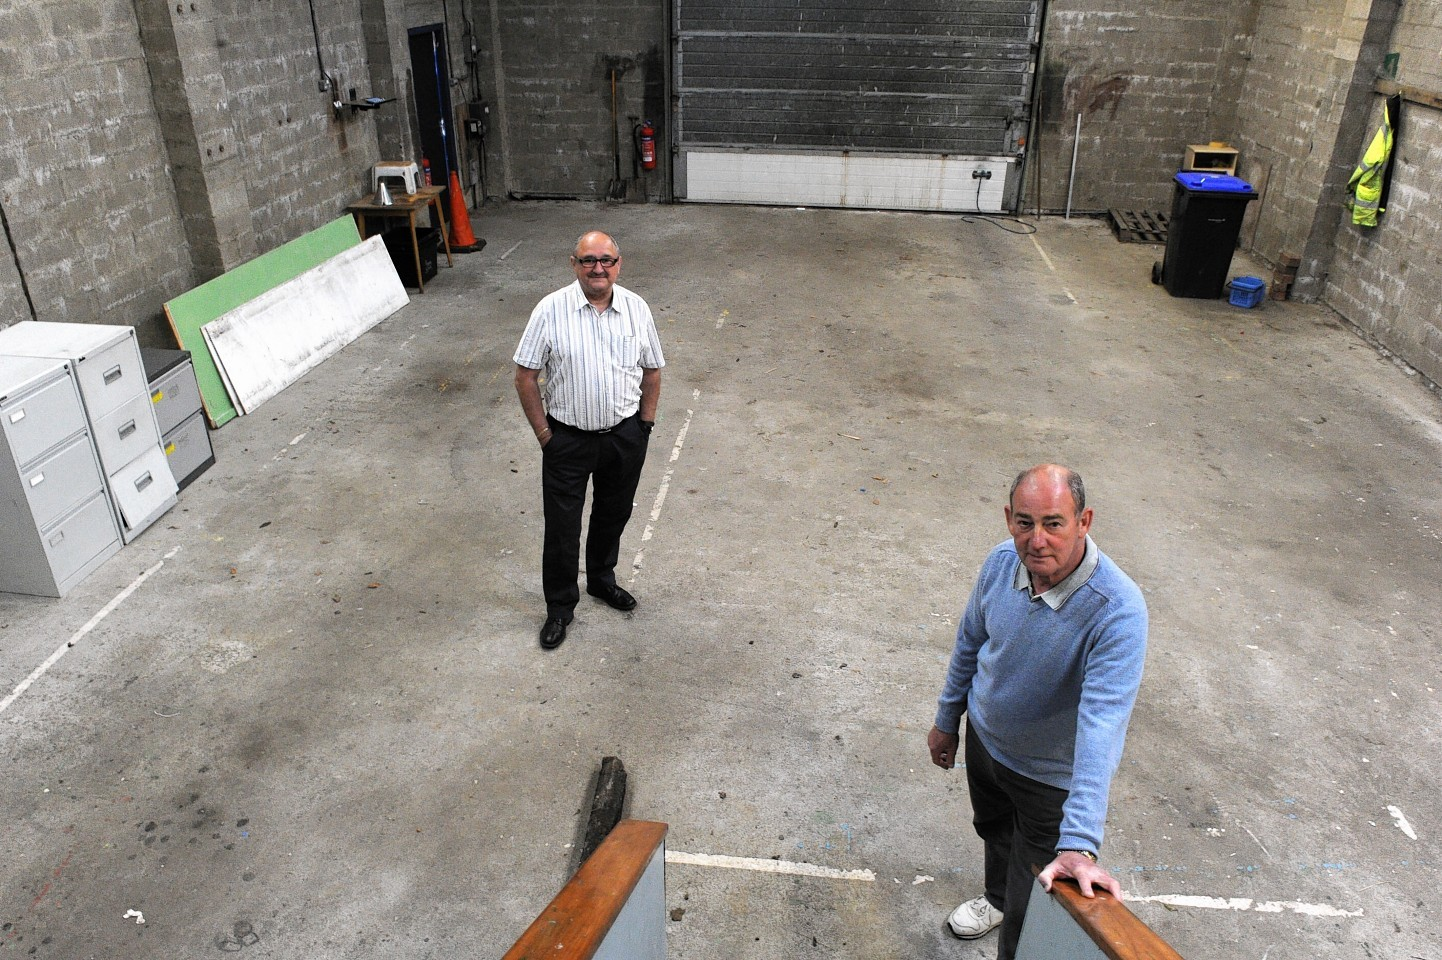 The Ellon and District Men's Shed